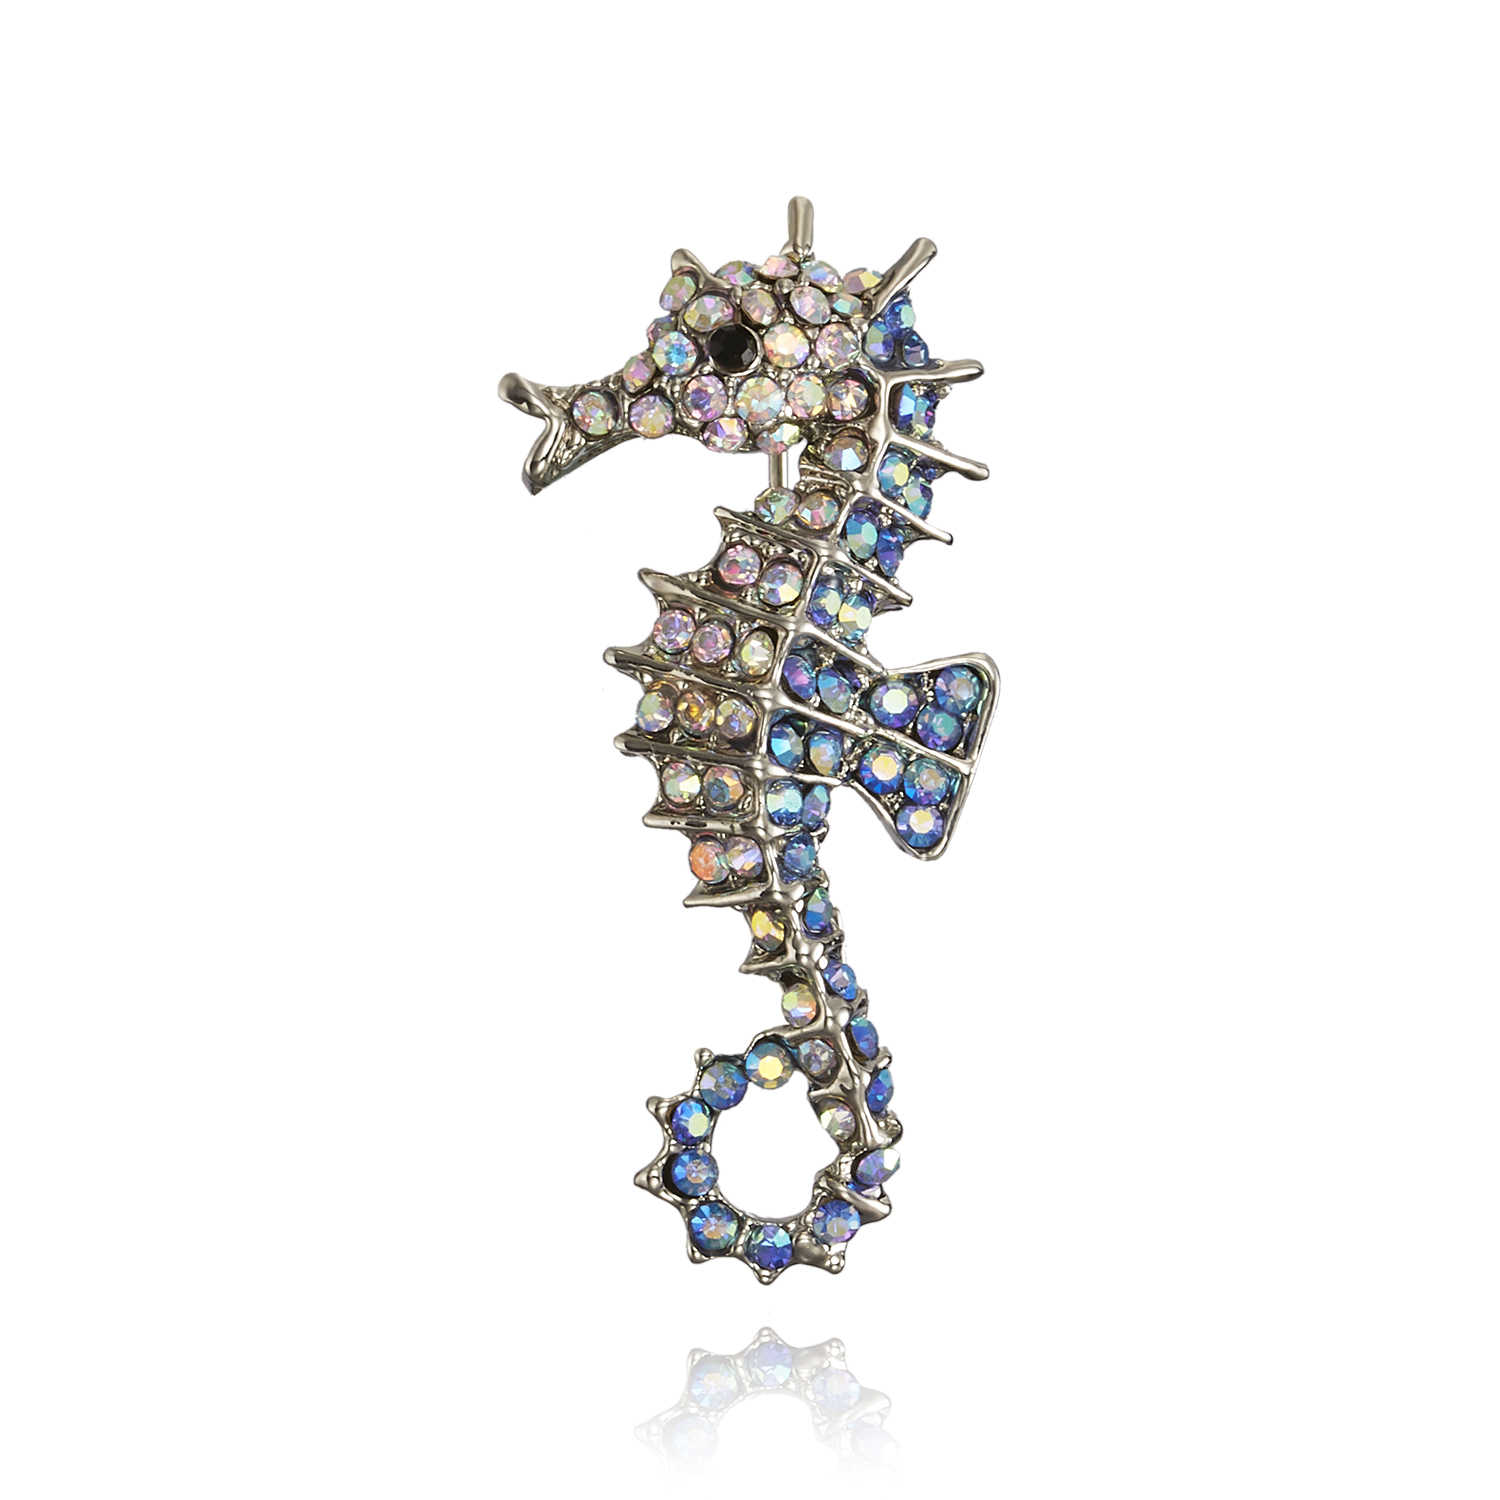 Animal Brooch Decoration Garment Corsage Rhinestones Red Blue Sea horse Swim hippocampus Brooches Women Men jewelry pins